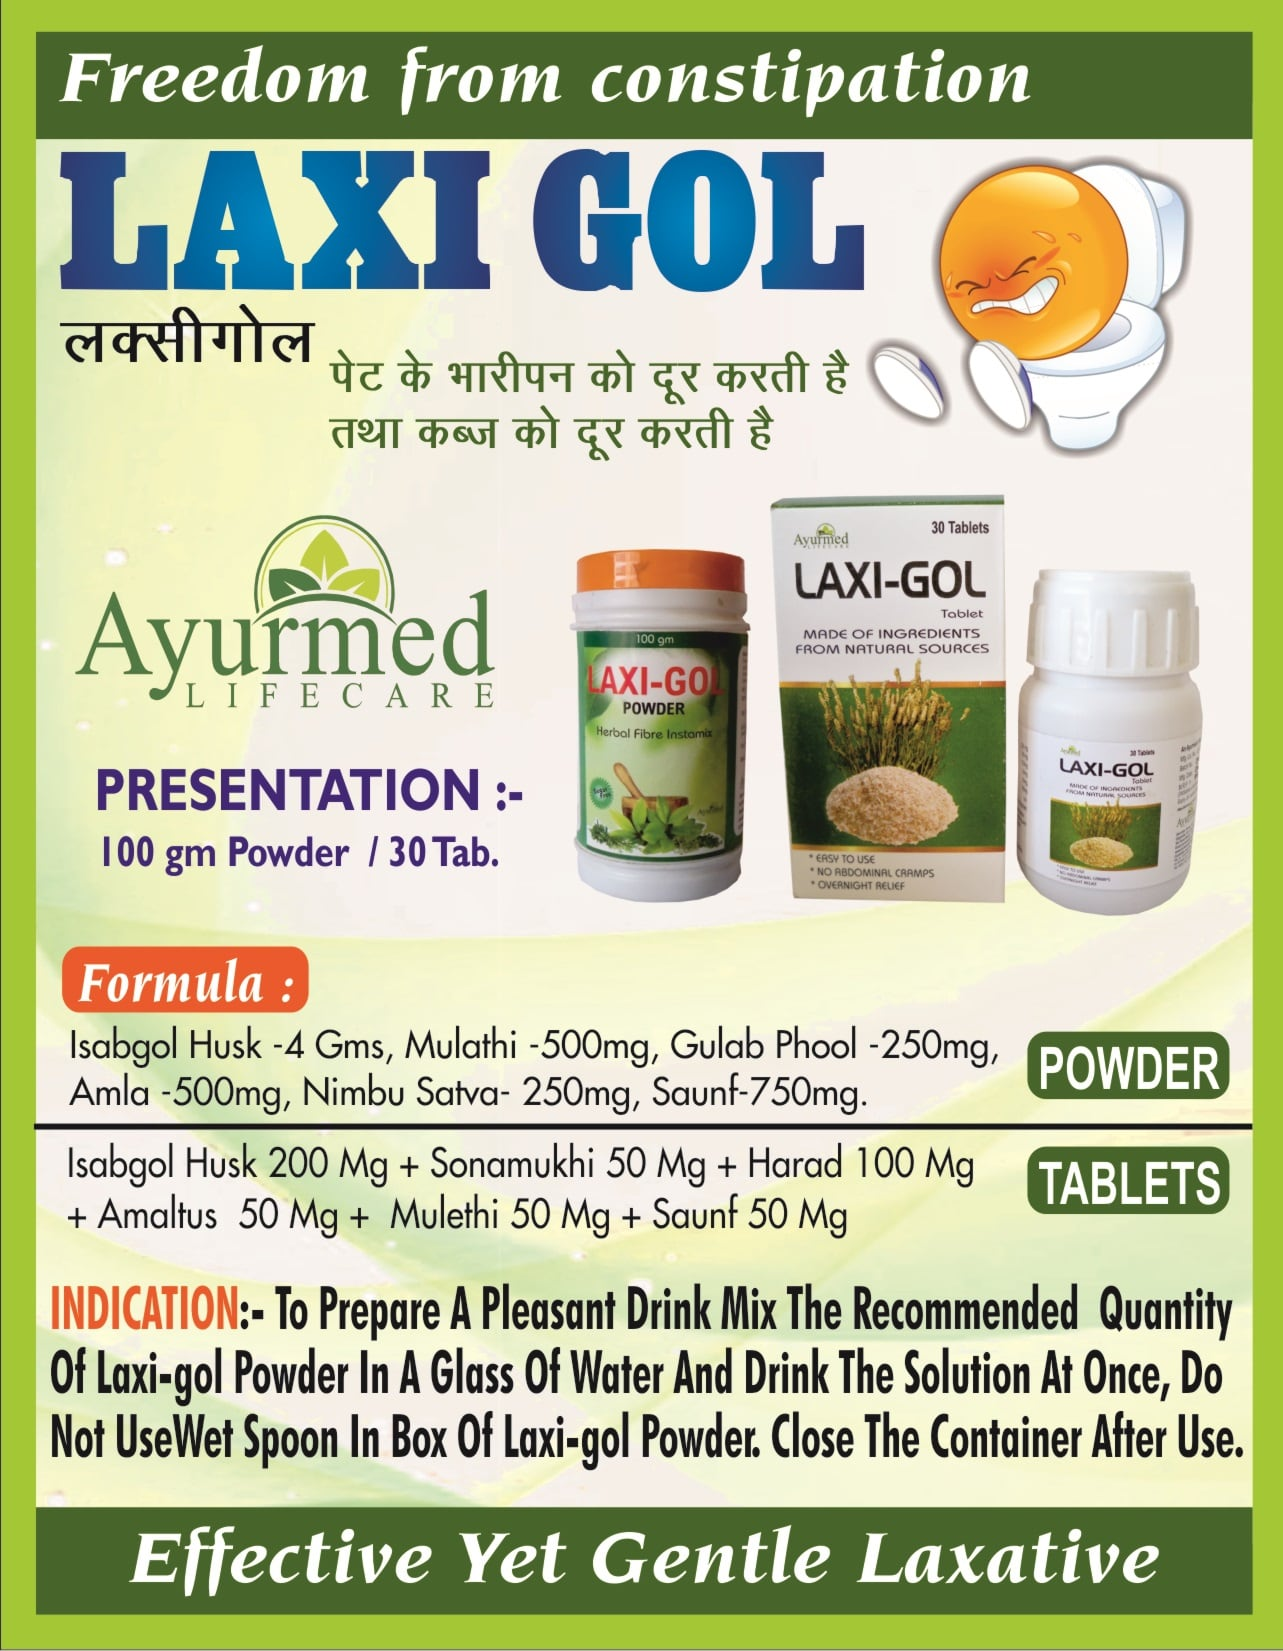 LAXI-GOL-Powder-Tablet